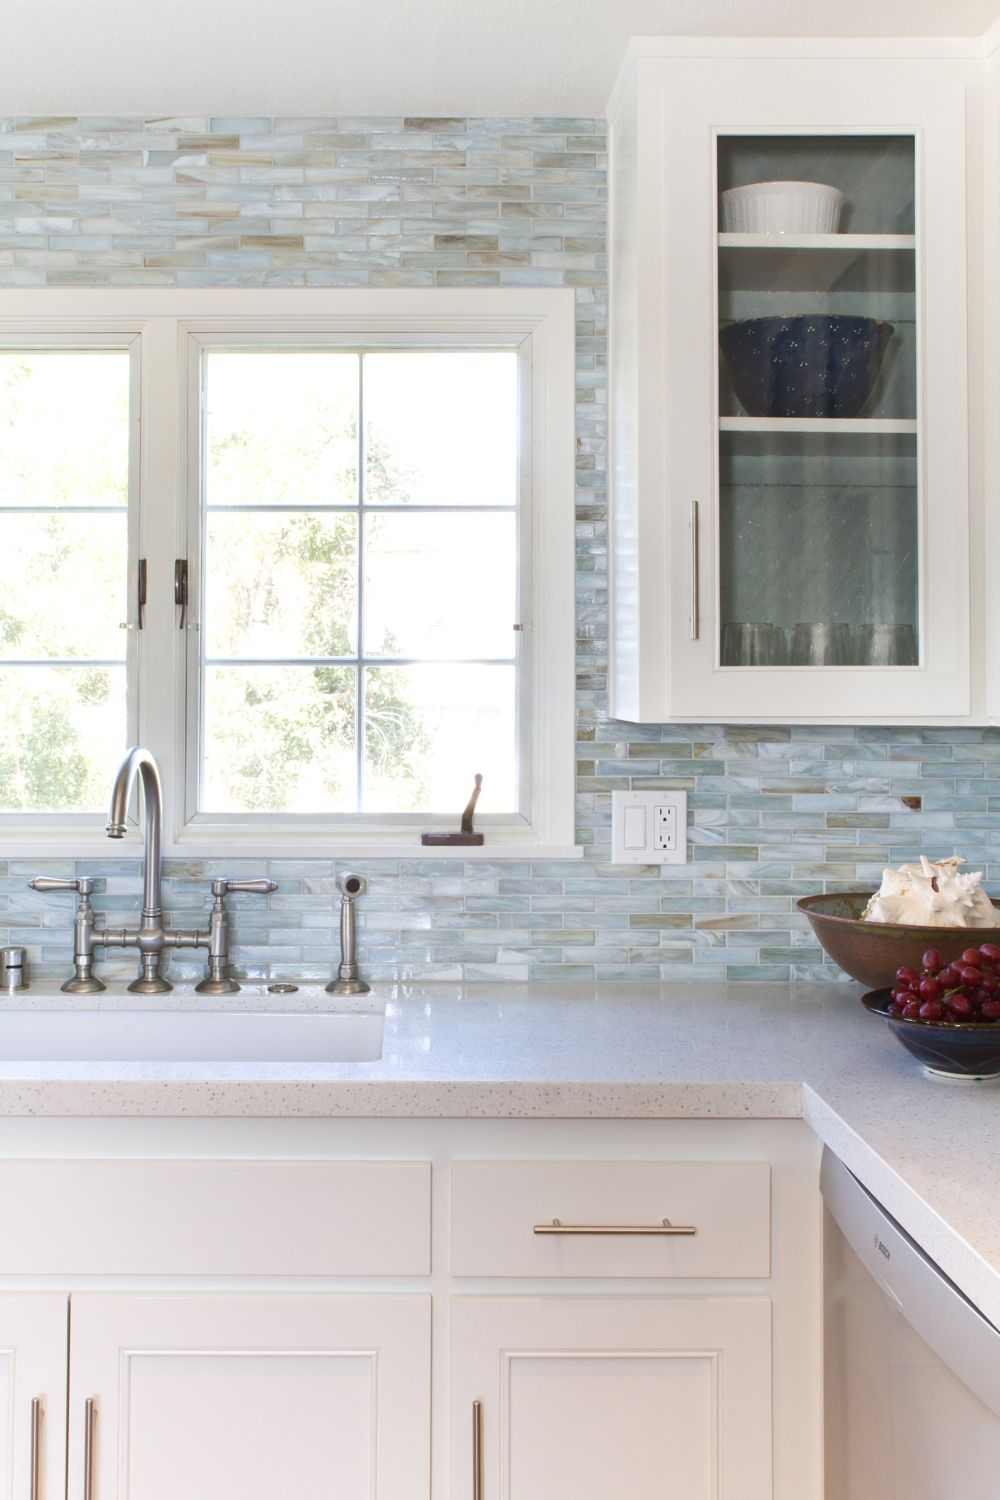 20 Kitchen Backsplash Ideas That Totally Steal The Show Kitchen